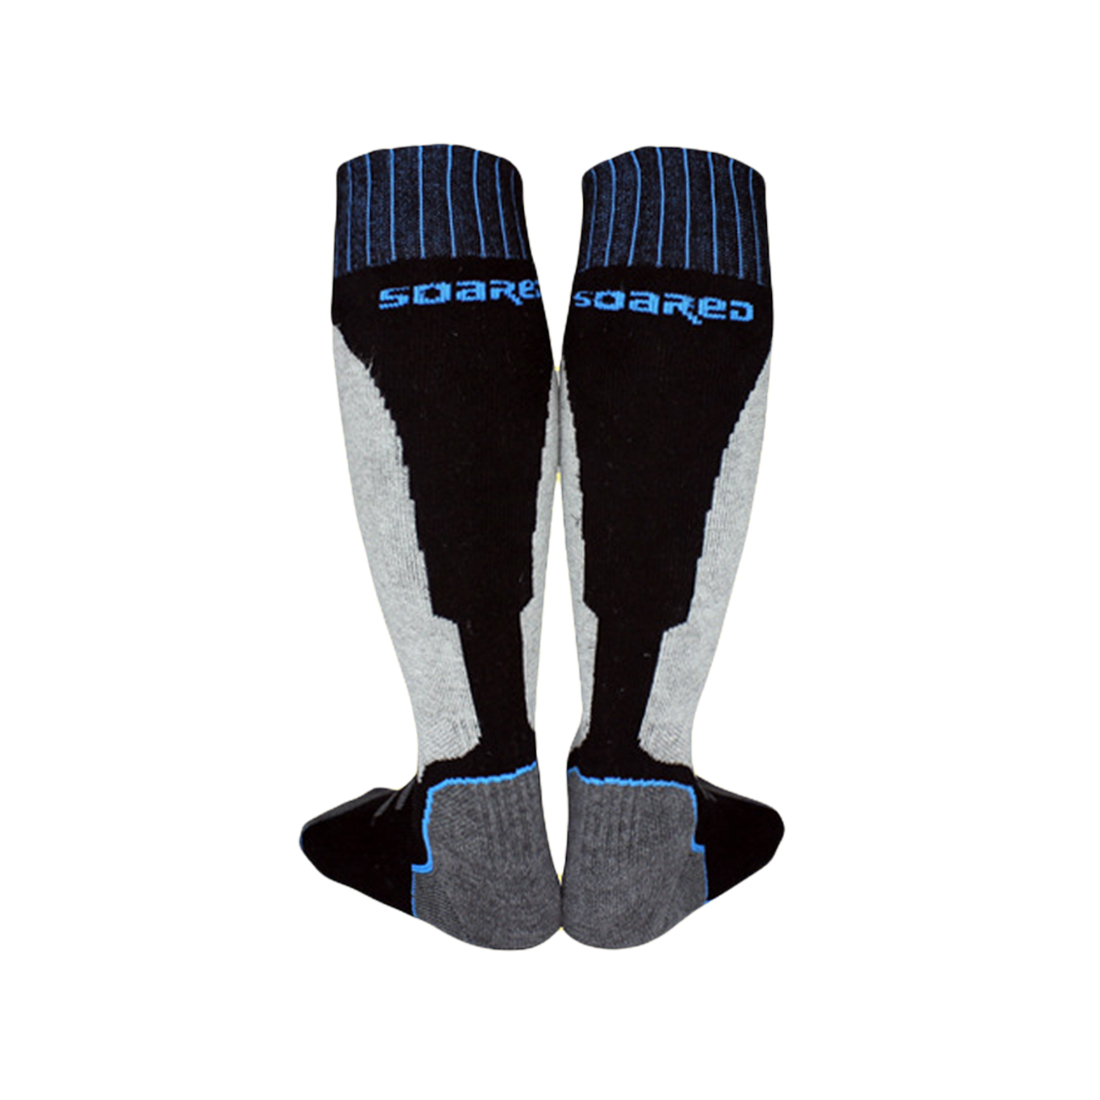 Top Sell Winter Warm Men Thermal Ski Socks Thick Cotton Sports Snowboard Skiing Soccer Socks Thermosocks Leg Warmers